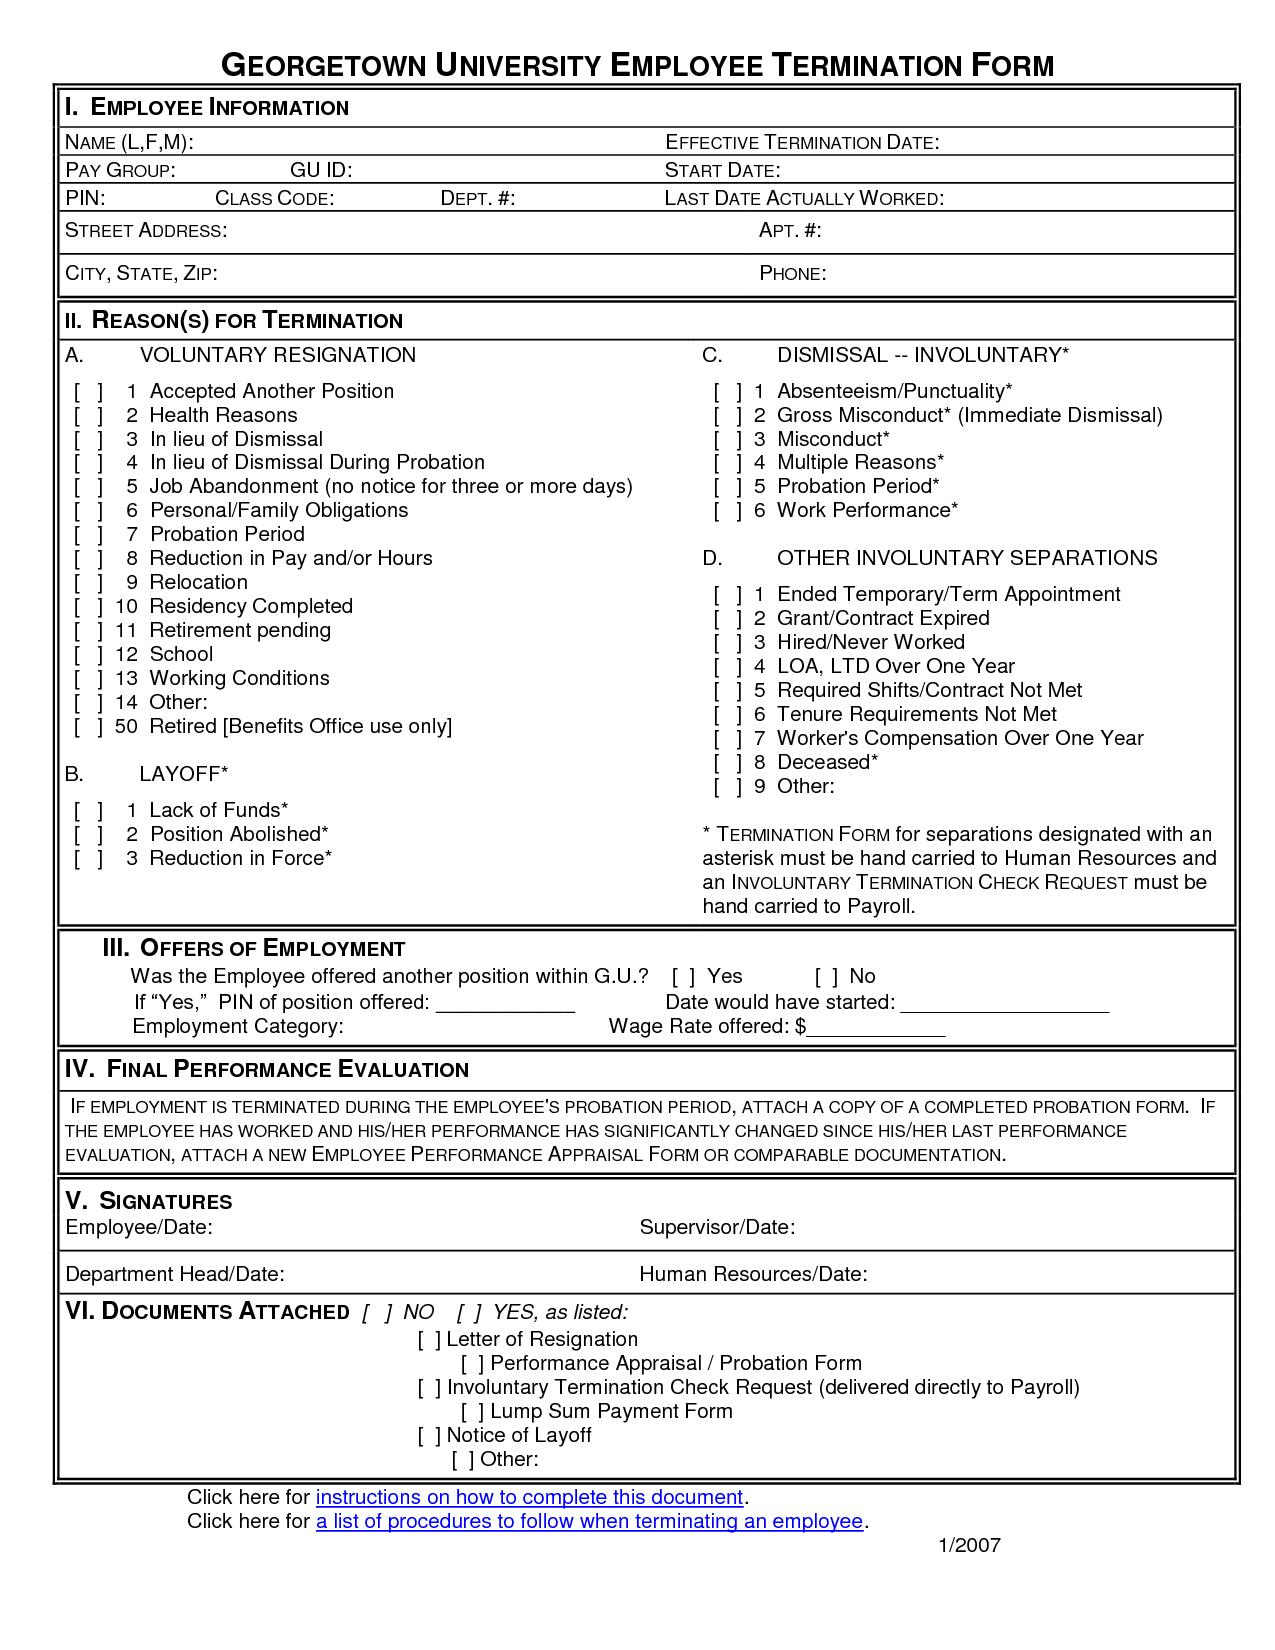 Employment Termination Form Template Free